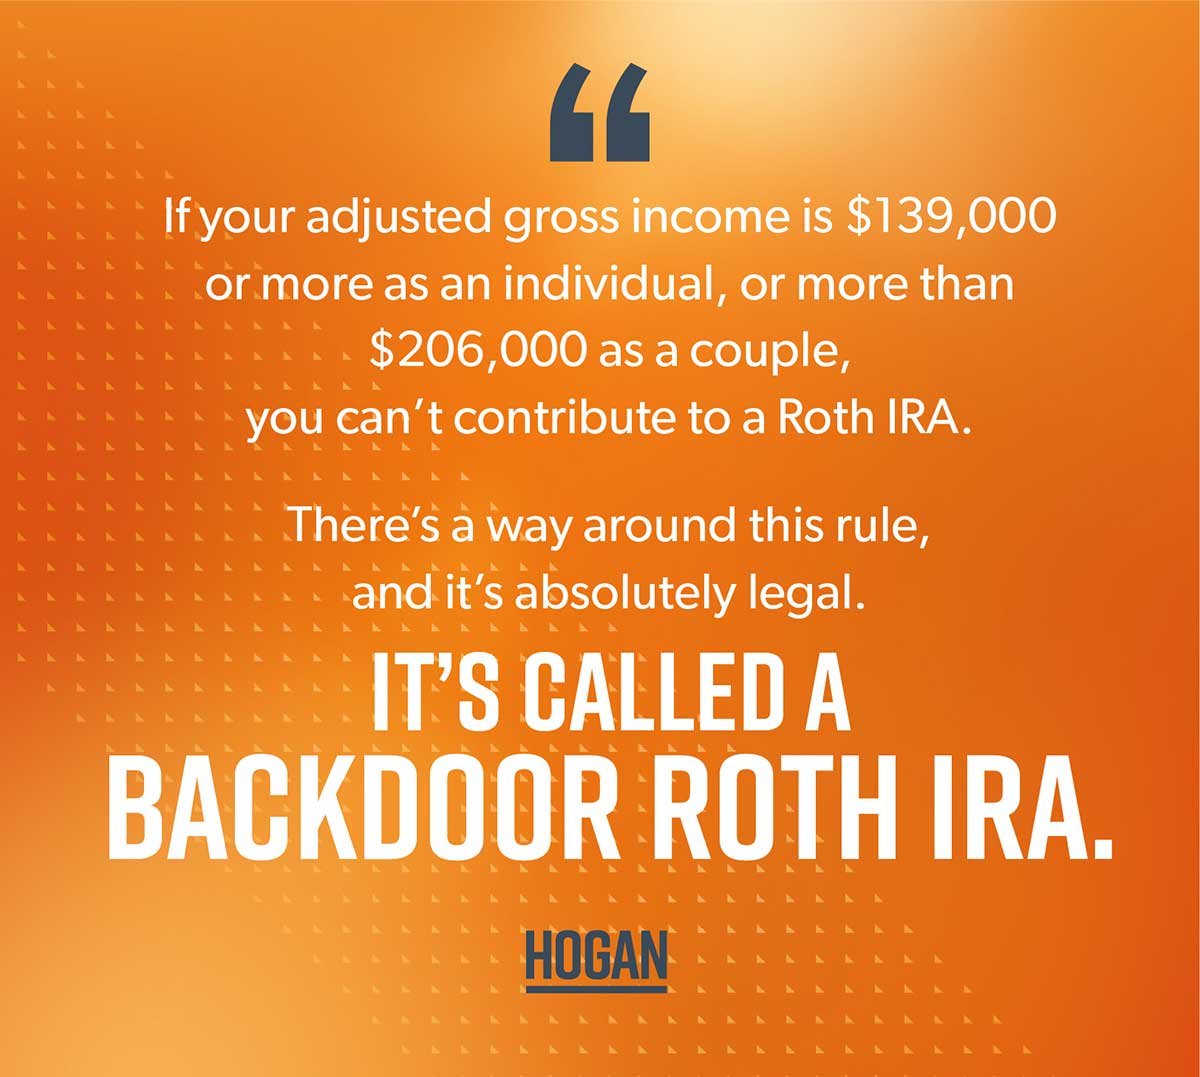 An image explaining a backdoor roth IRA.